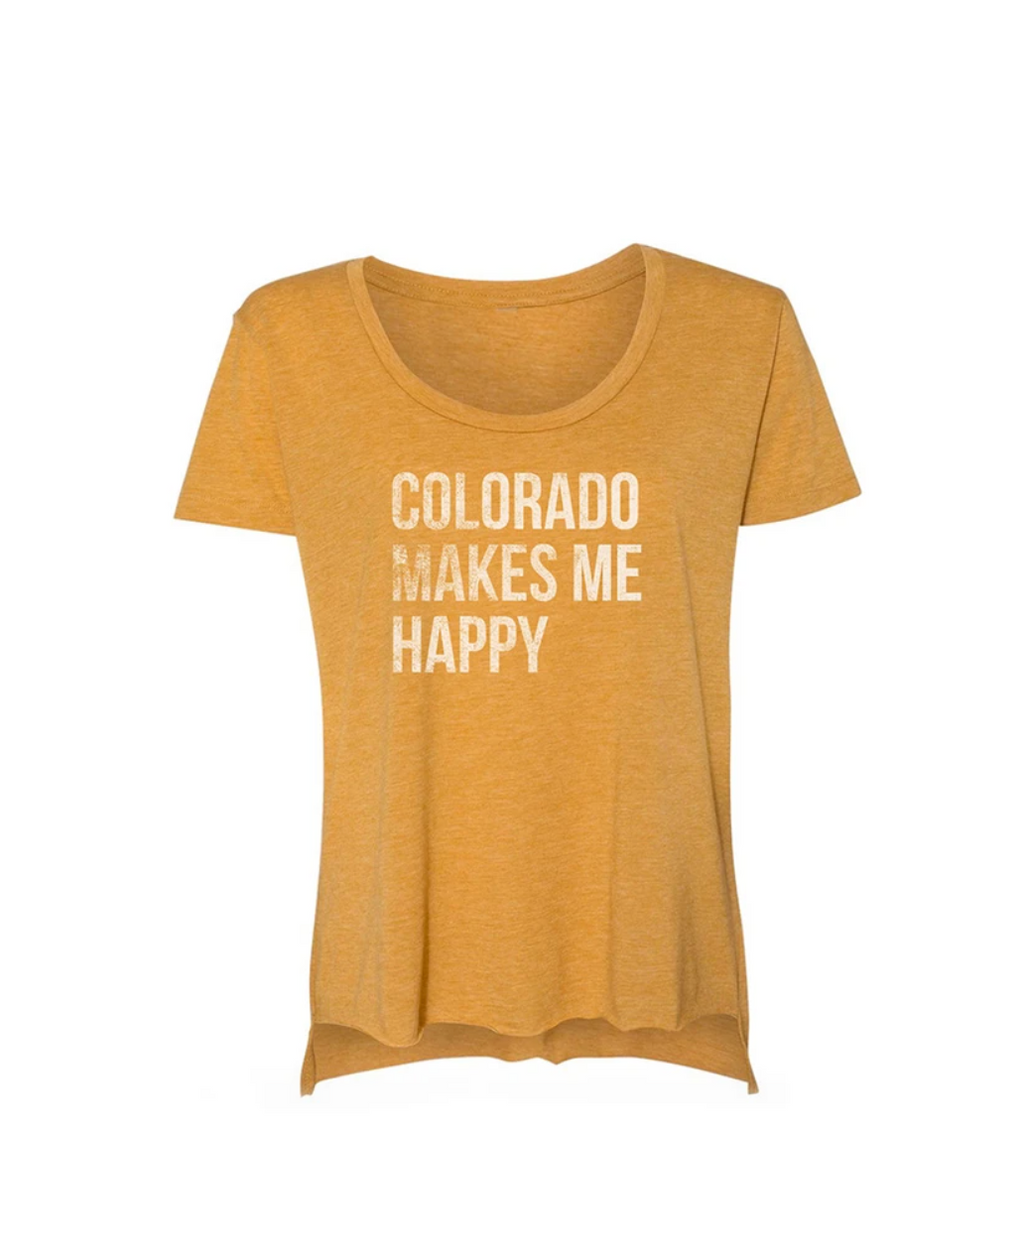 Republic | Colorado Makes Me Happy